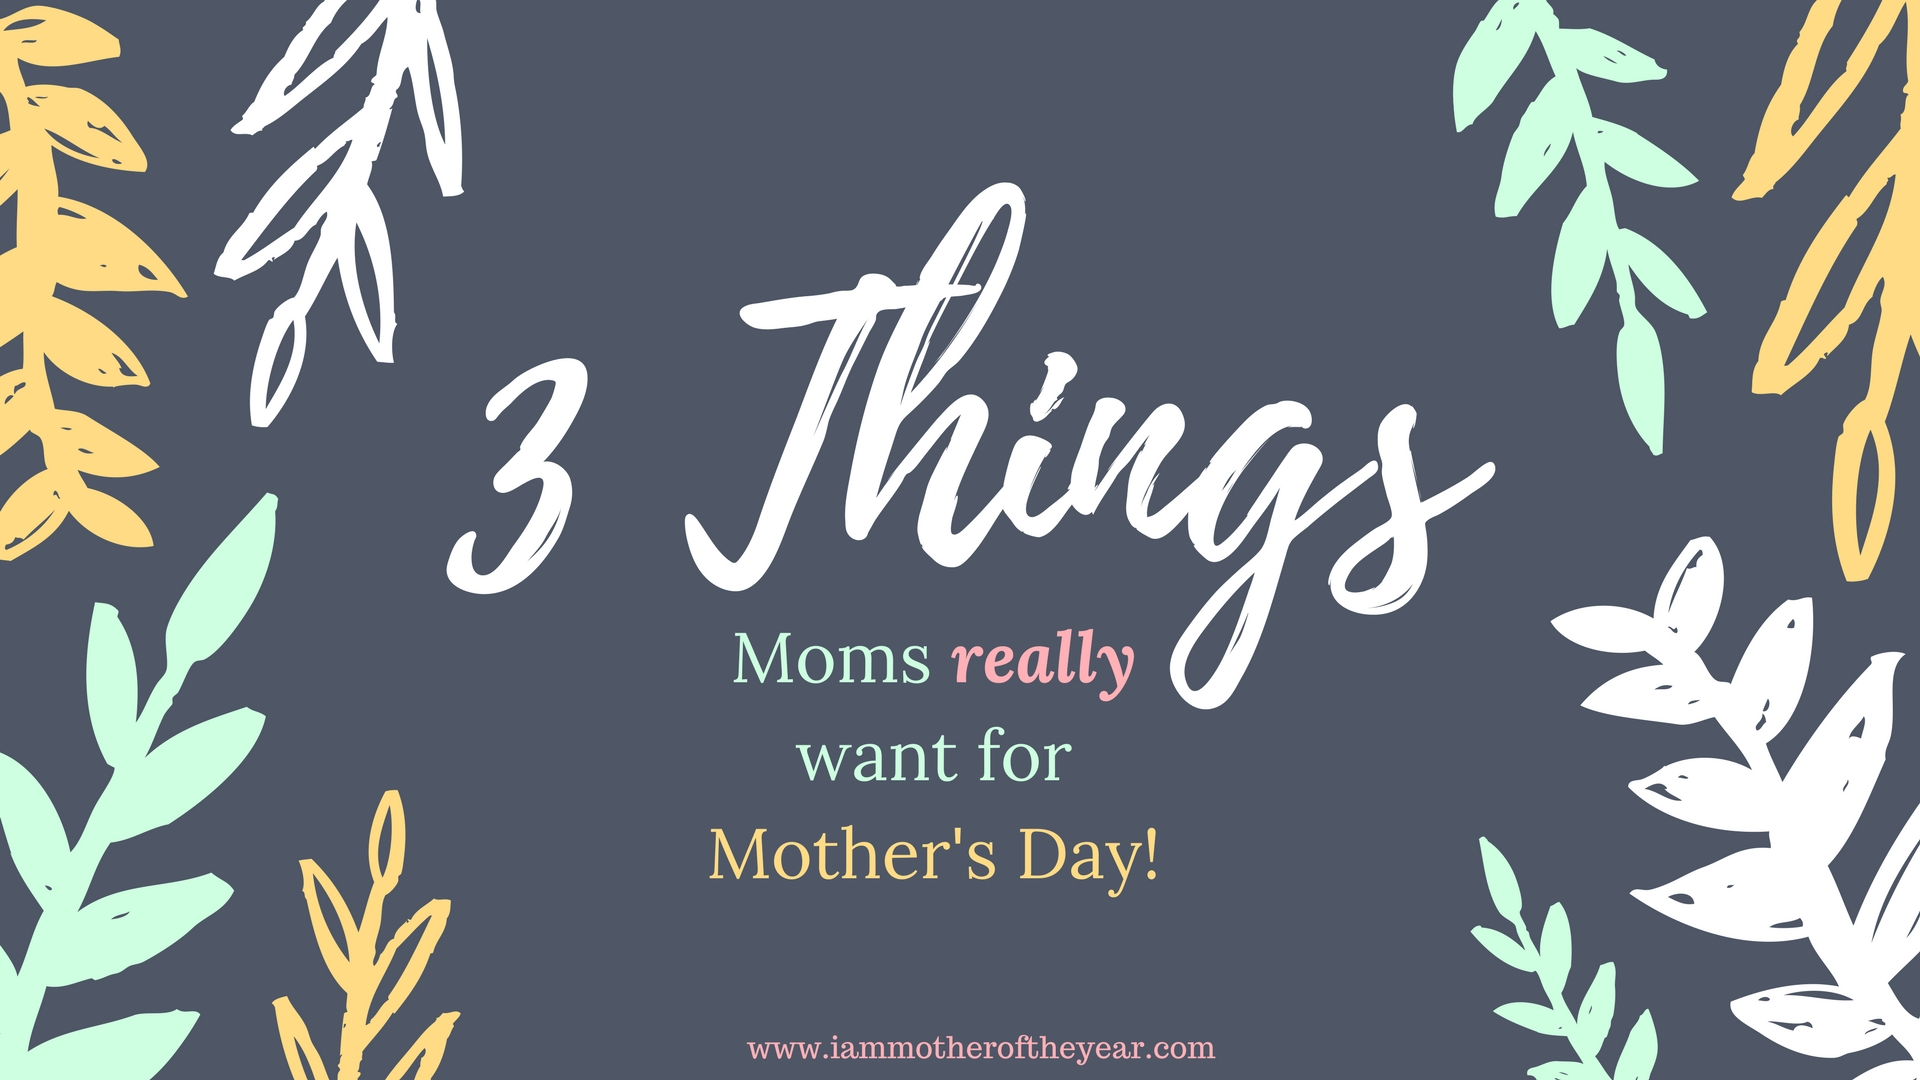 3 things moms really want for mothers day.jpg